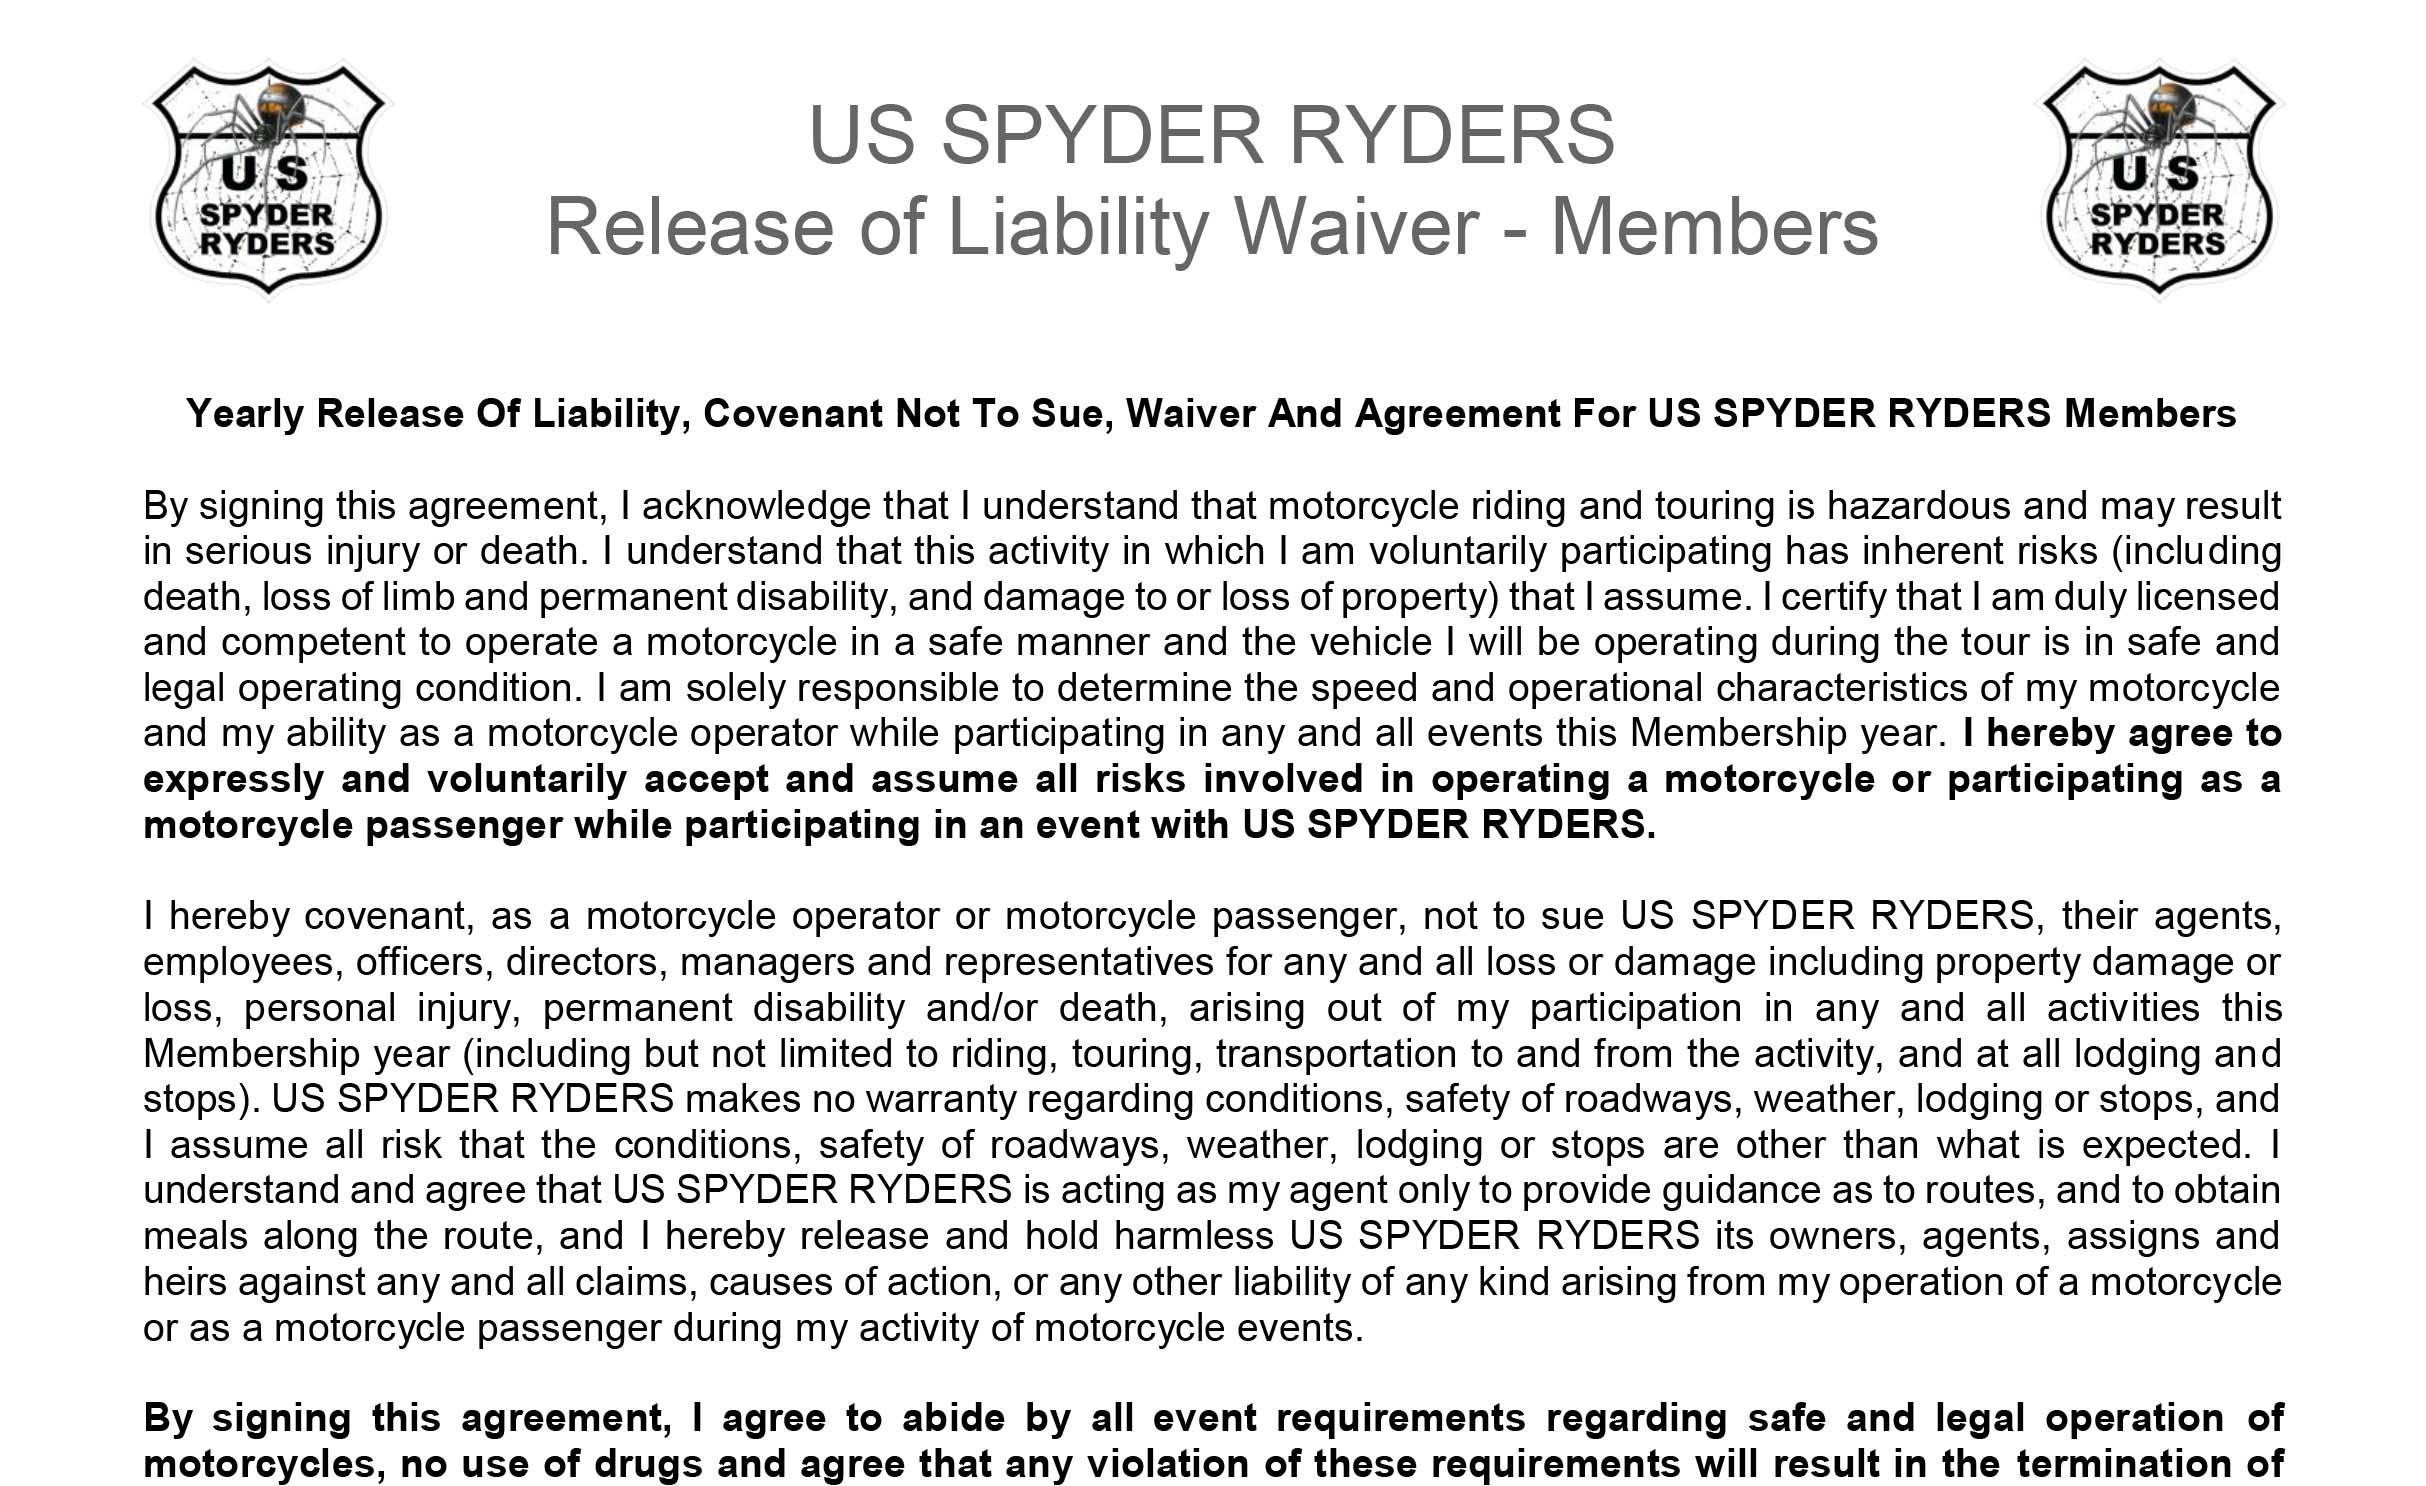 South Florida Chapter Liability Waiver - Member